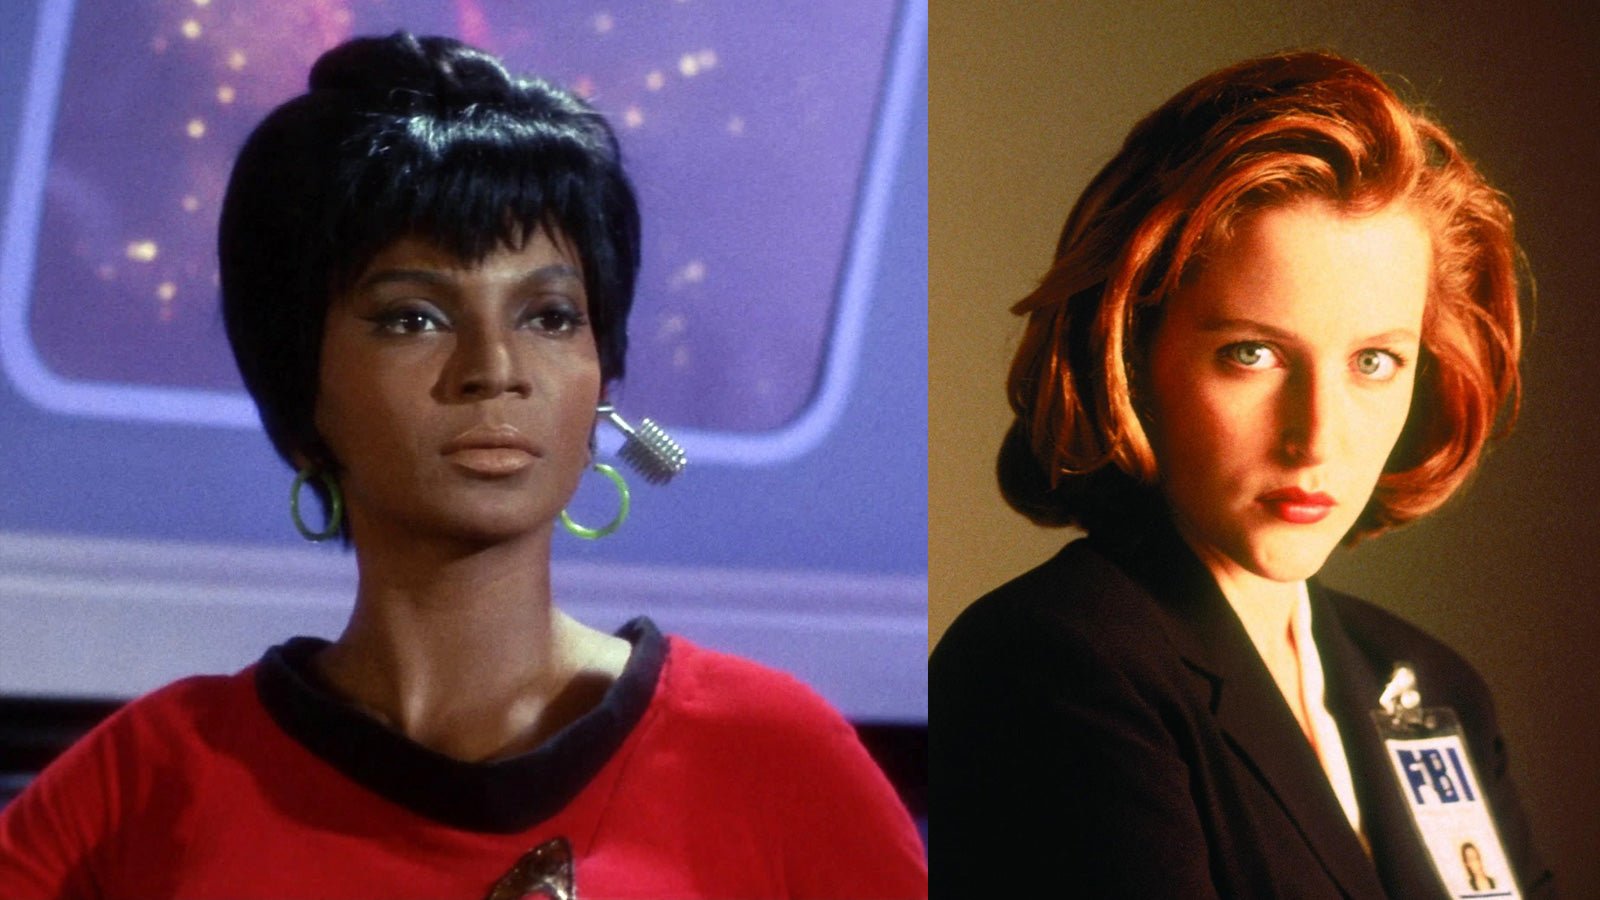 Lt Uhura Dana Scully